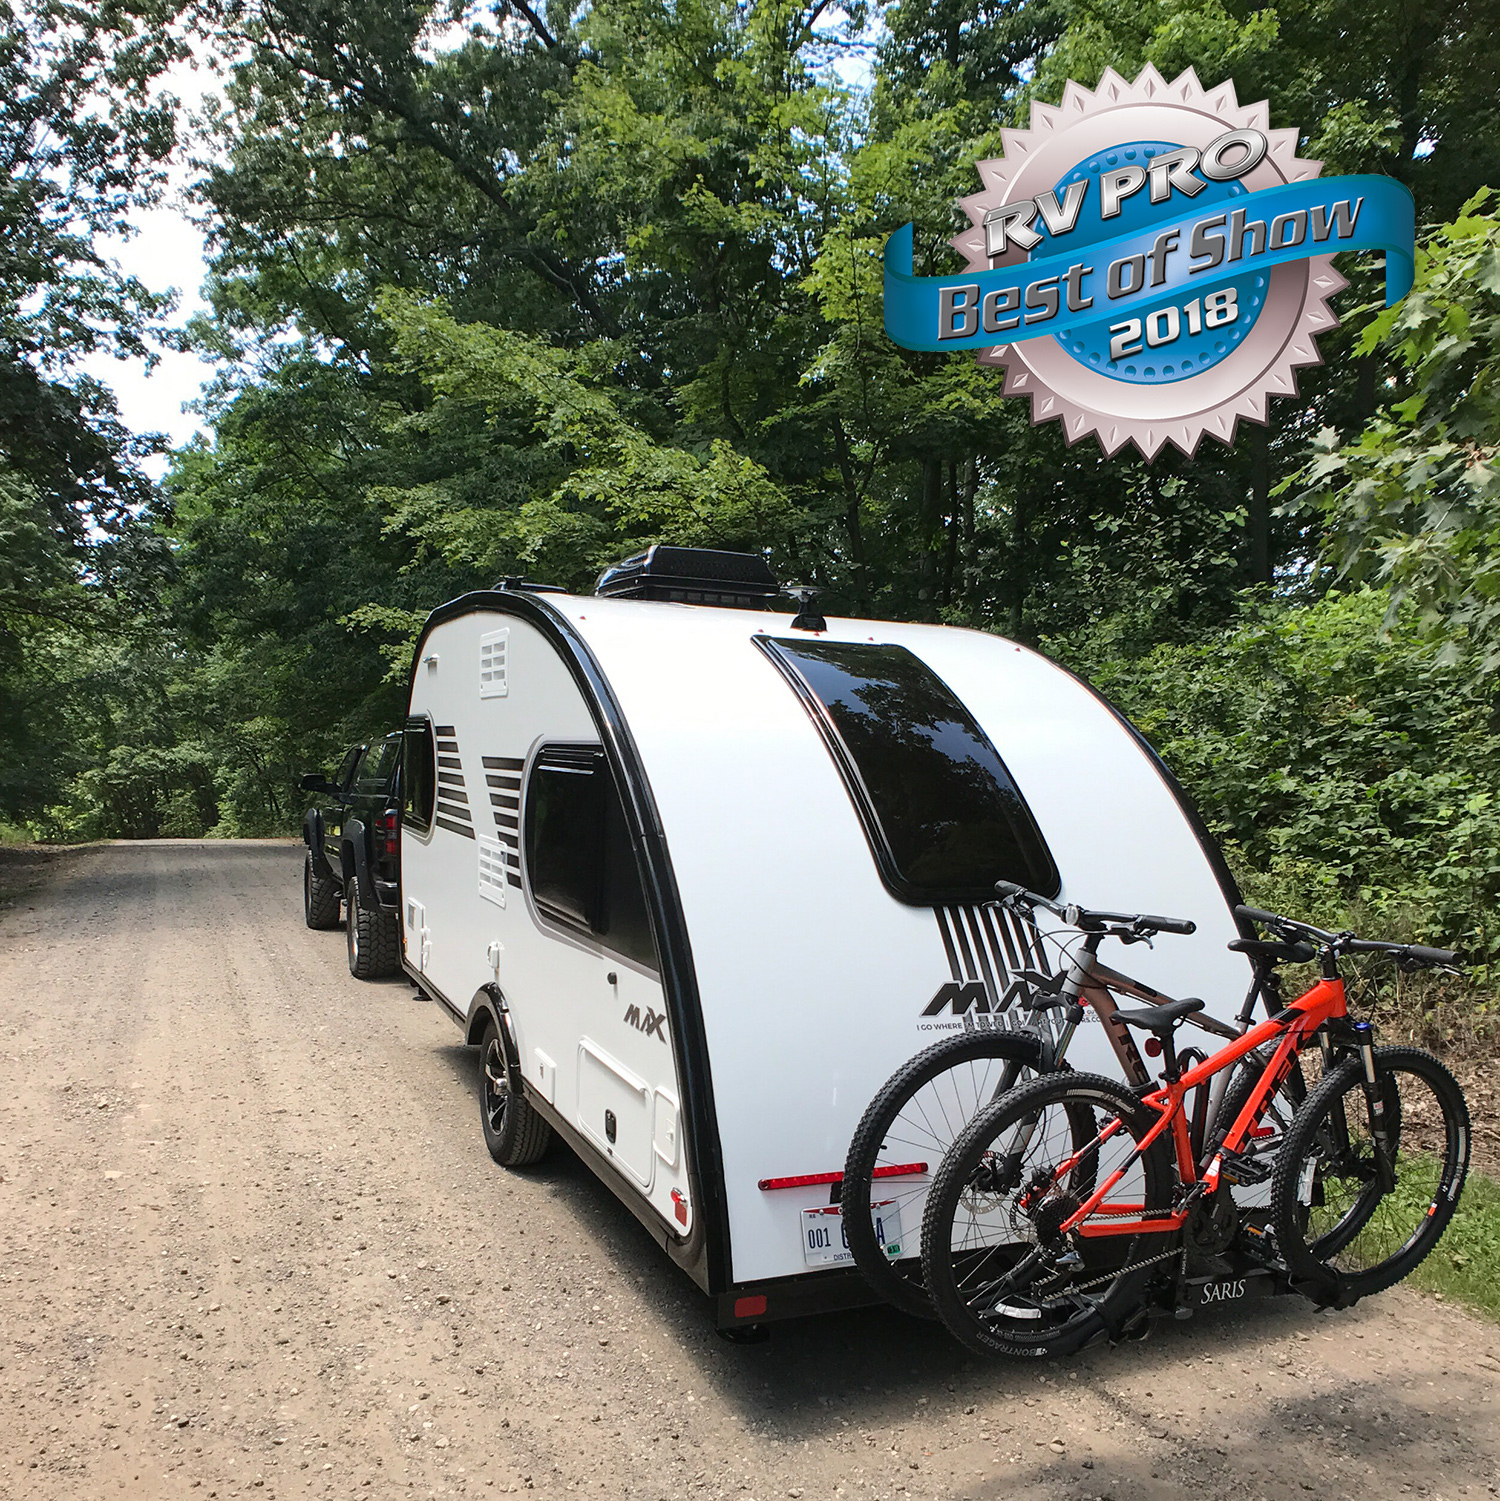 RV Pro Best of Show